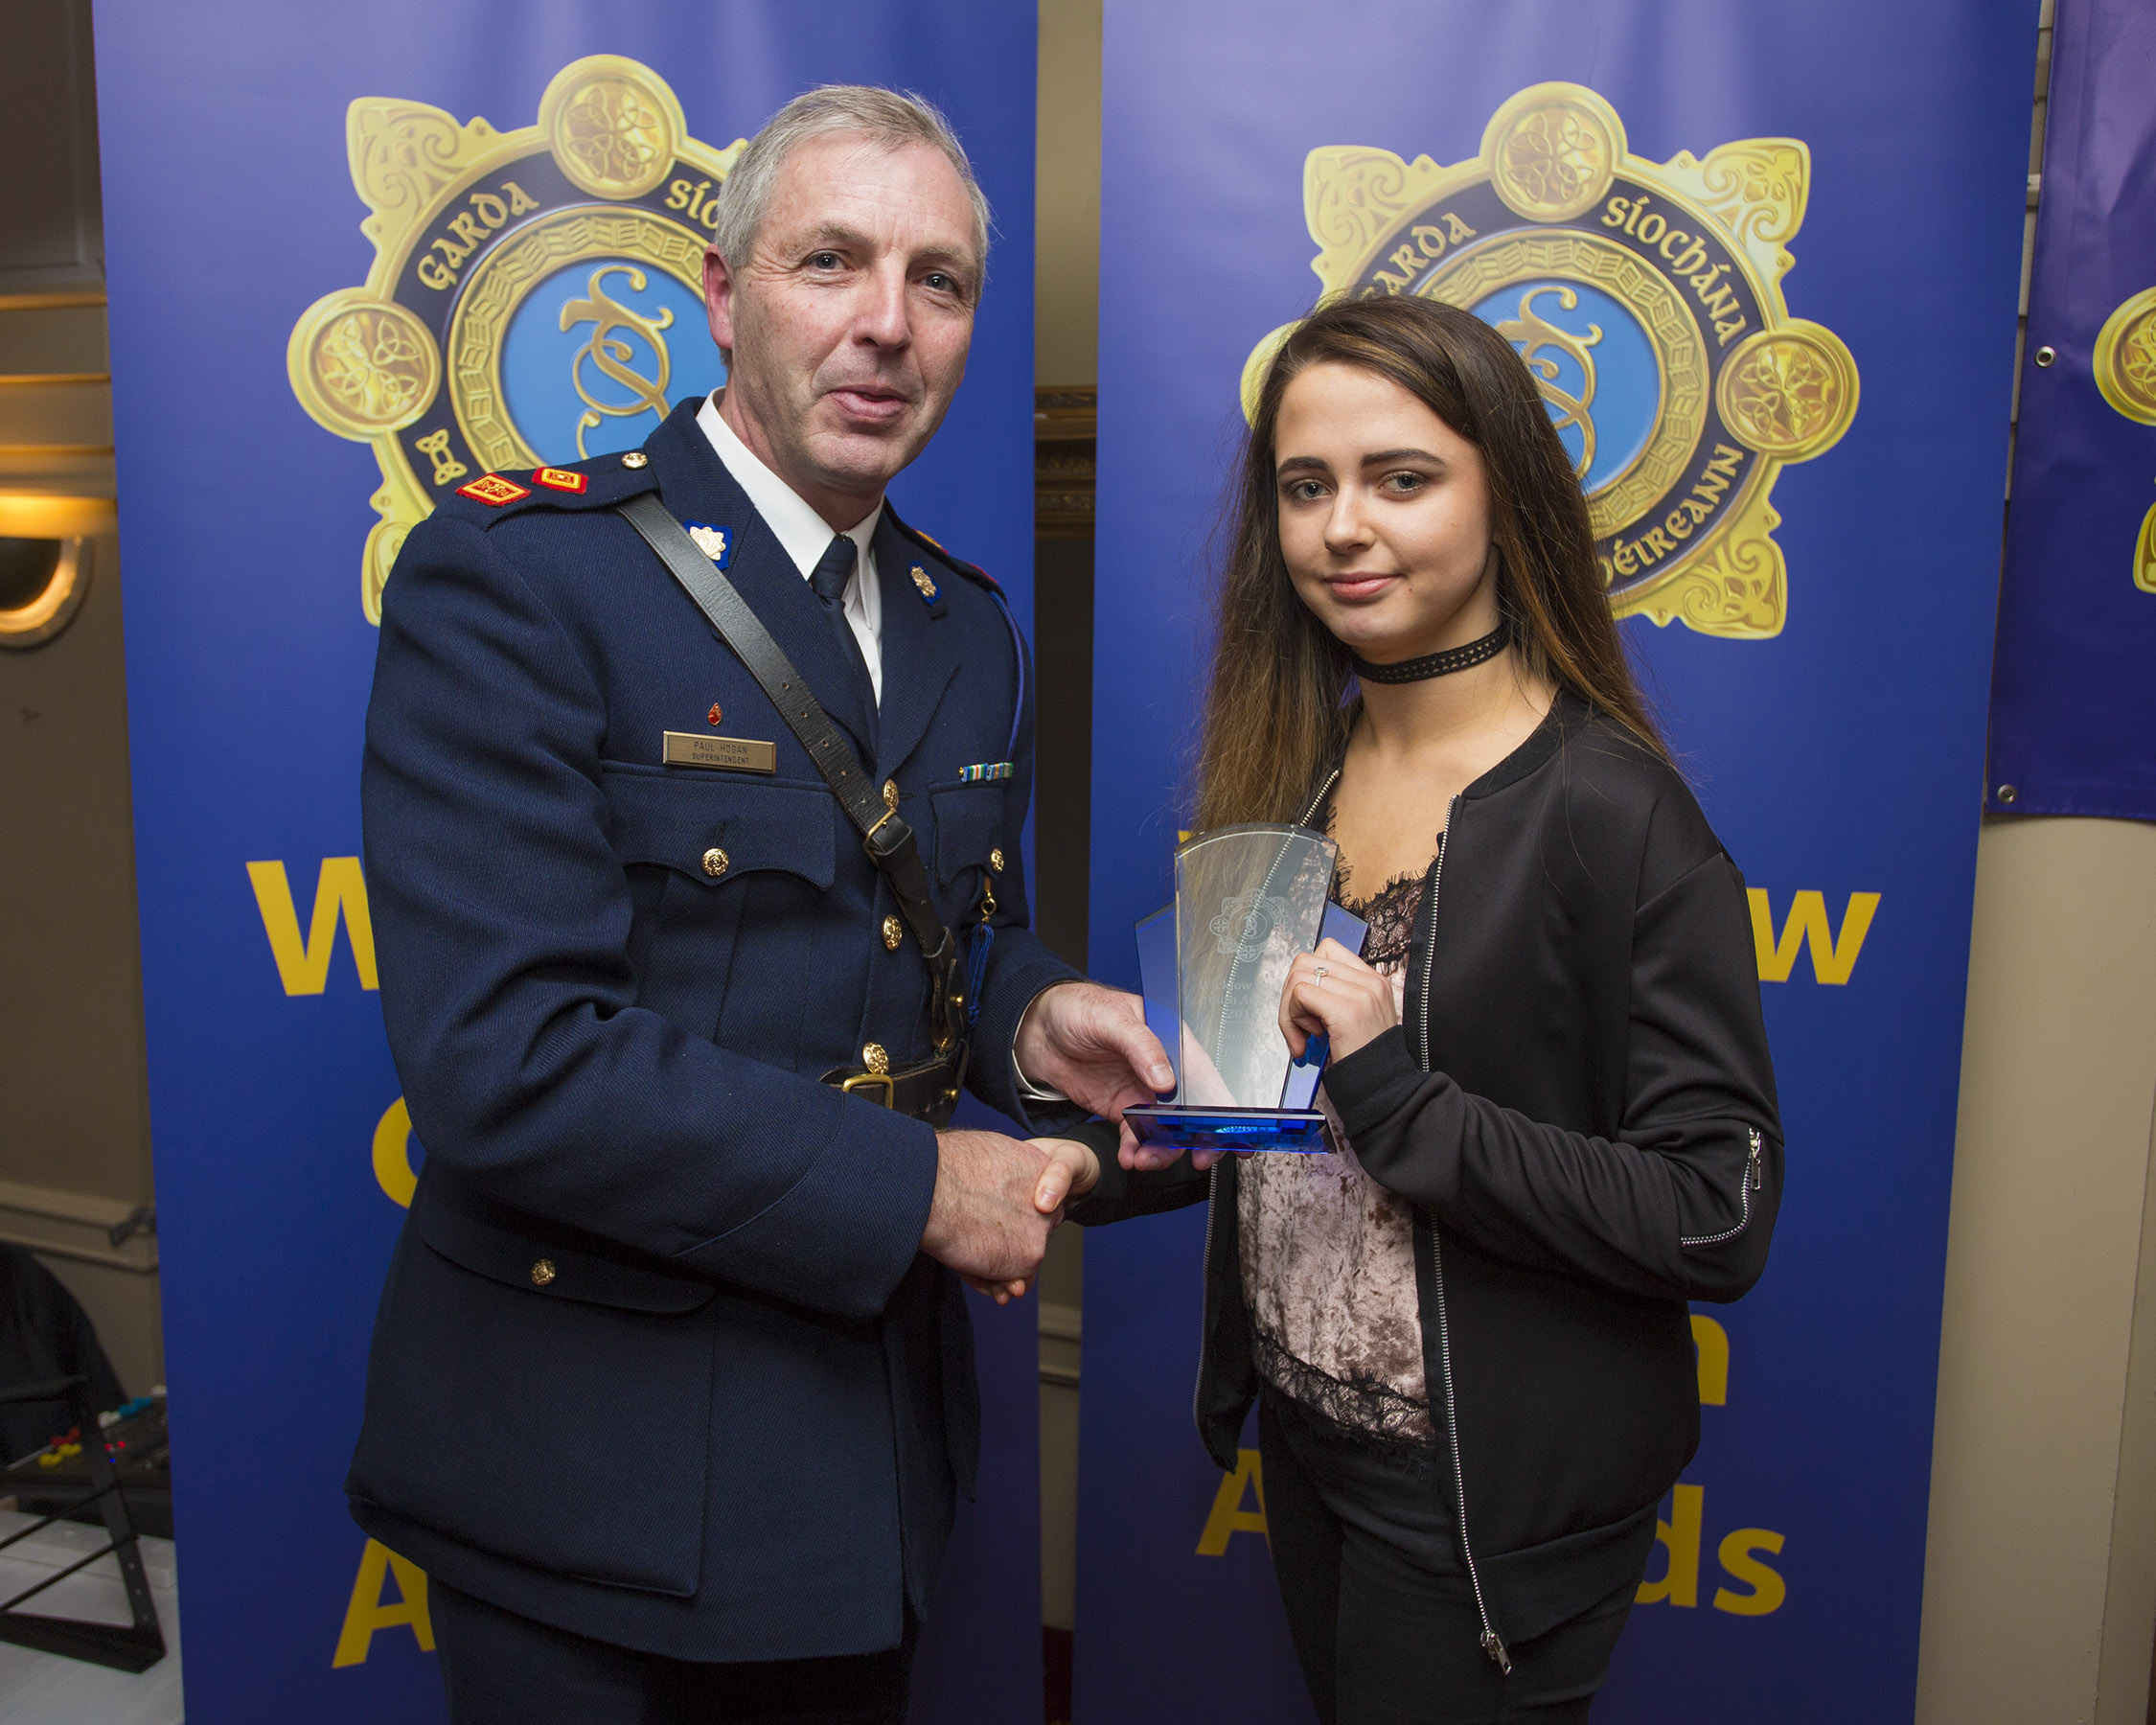 Shannon Franey from Glenealy recieves her youth award from Superintendant Paul Hogan at the 2nd Annual Wicklow Garda Youth Awards which was held in the Grand Hotel, Wicklow Town.